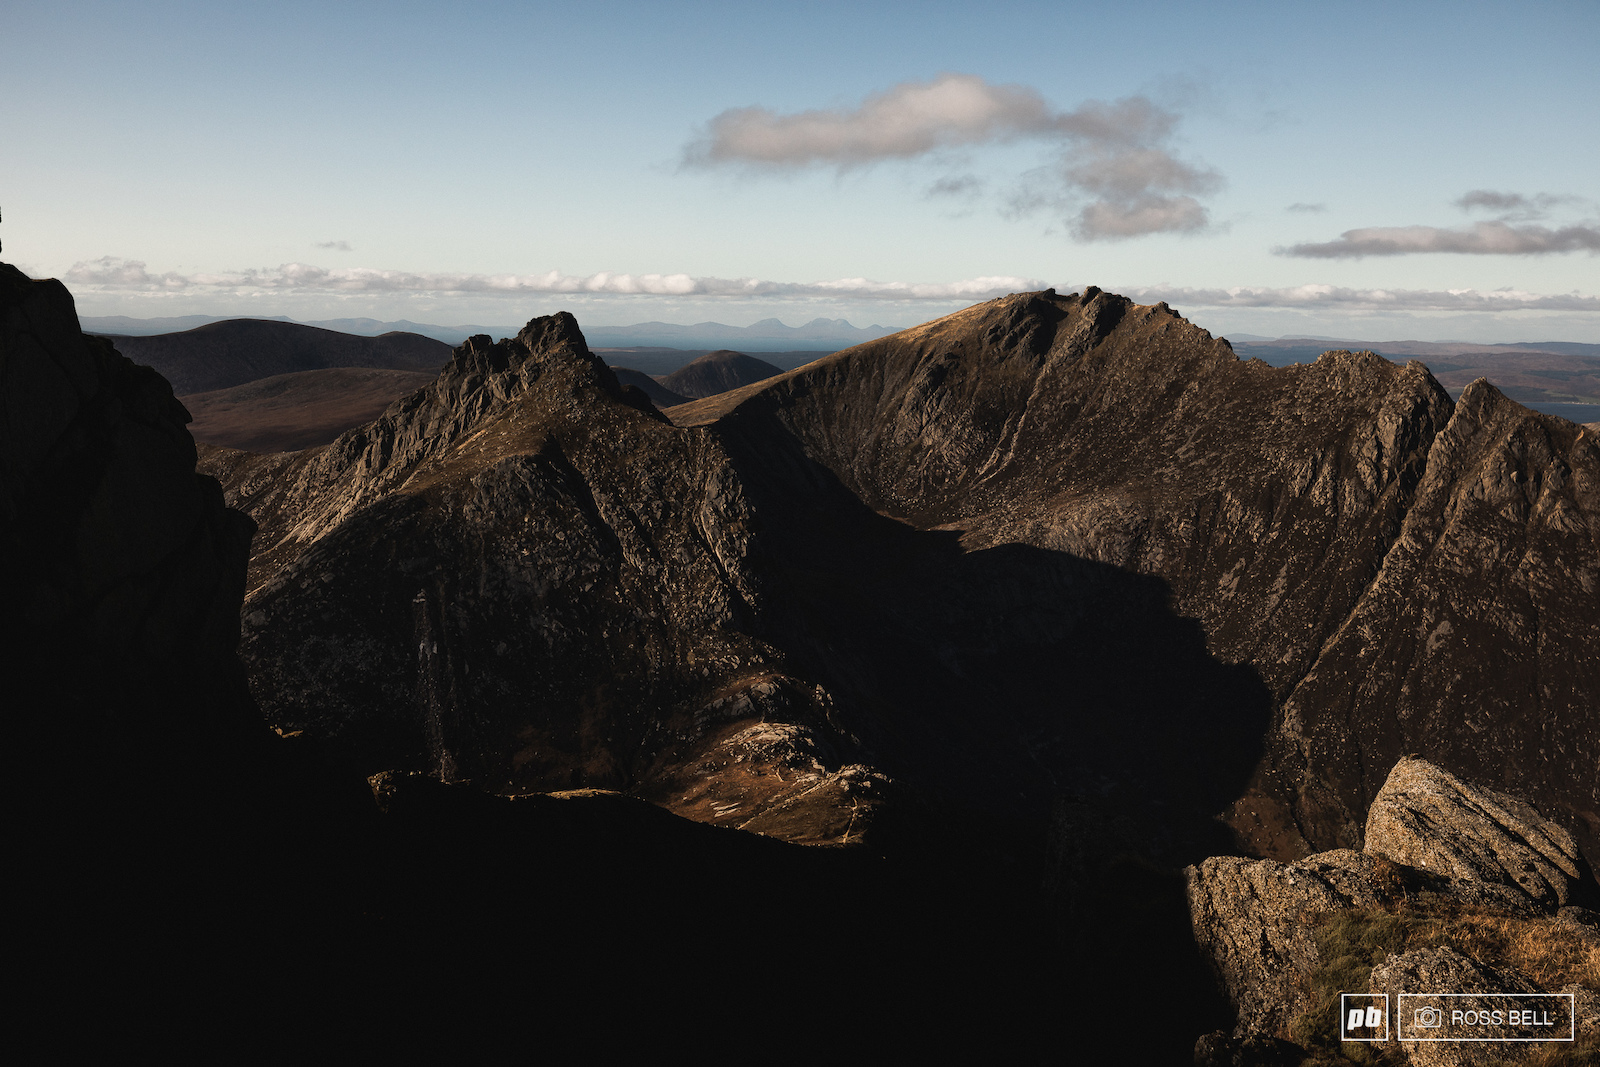 Looking across to Caisteal Abhail from Goat Fell on the Isle of Arran Scotland.